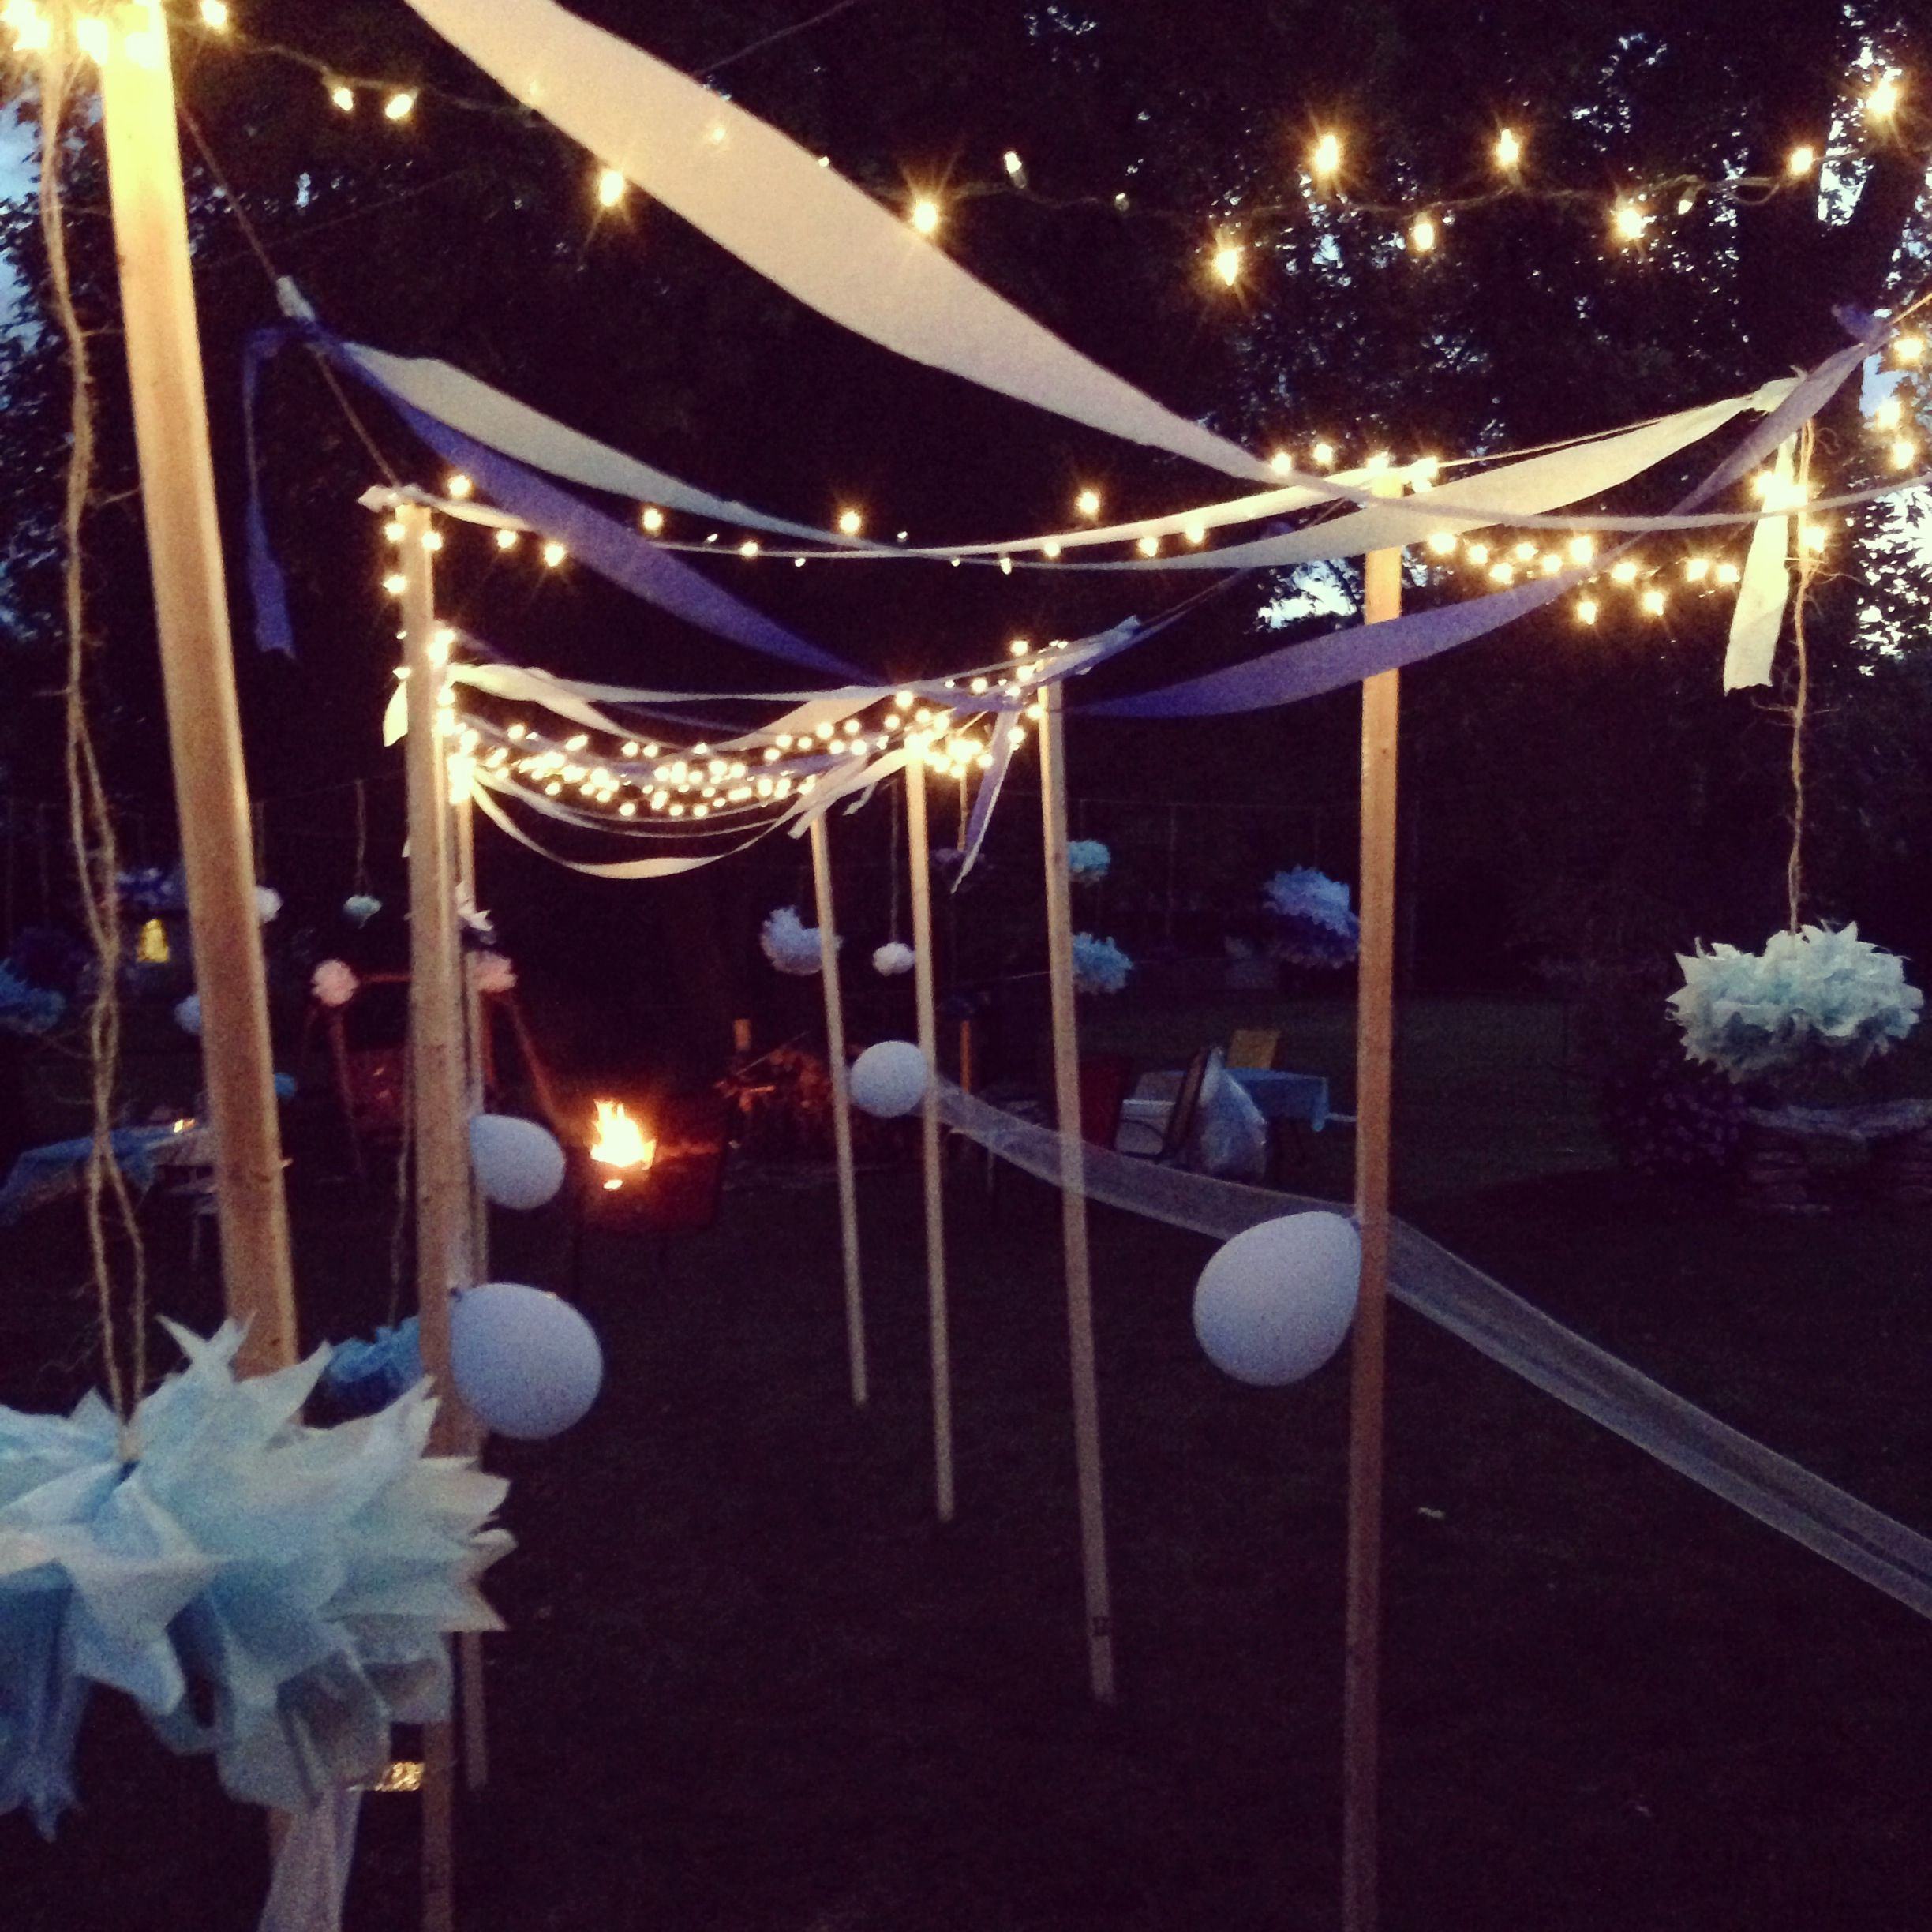 Pinterest for Baby shower decoration ideas for outdoors